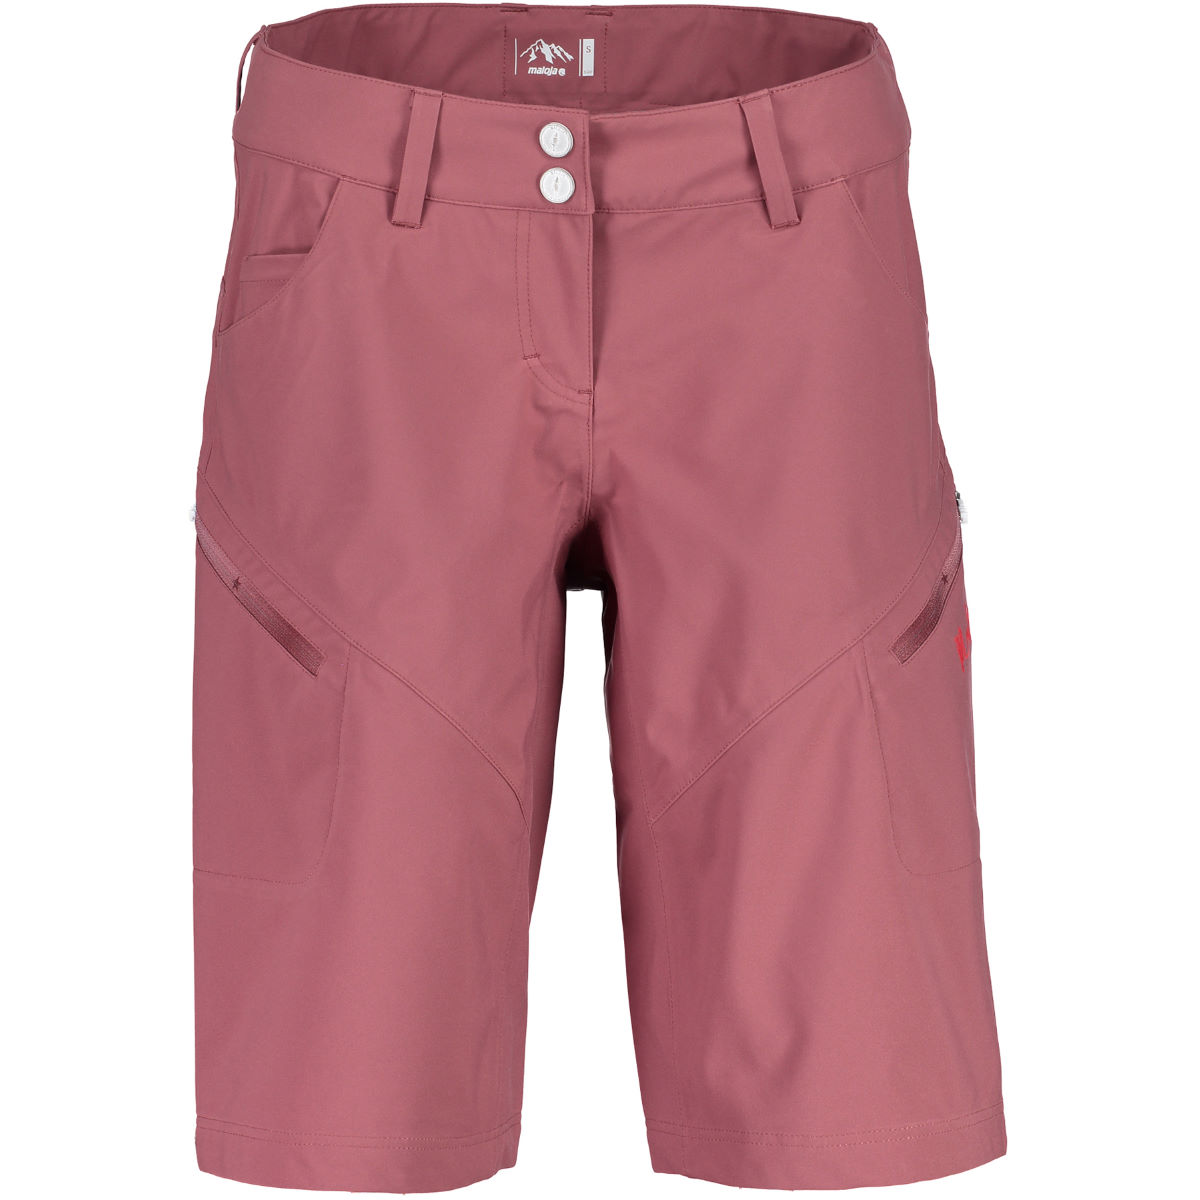 Short Femme Maloja SeoulM Freeride - S Frosted Berry Shorts VTT